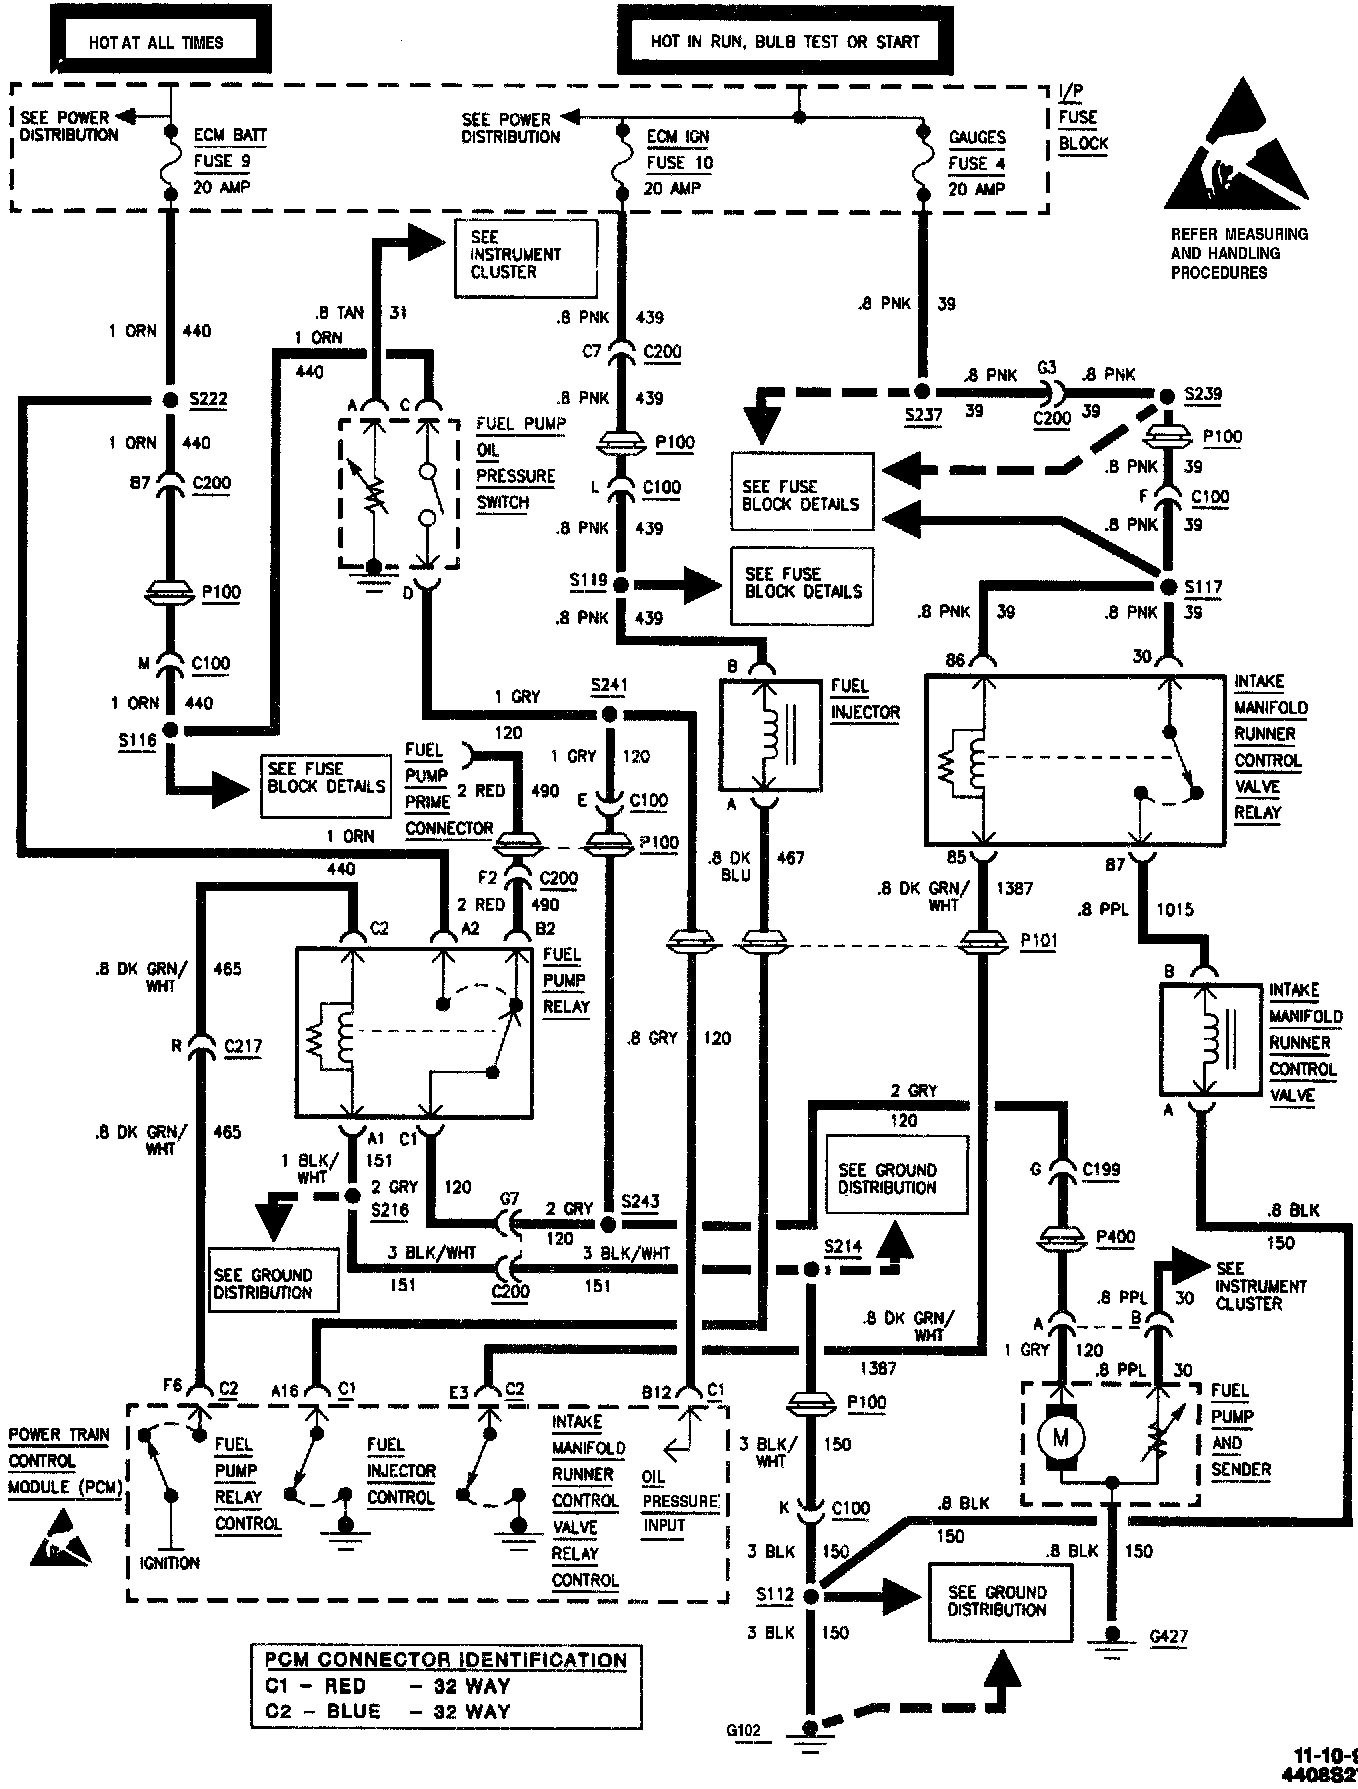 hight resolution of 95 s10 wiring harness diagram wiring diagram load aac wiring diagram for 95 s10 pickup wiring